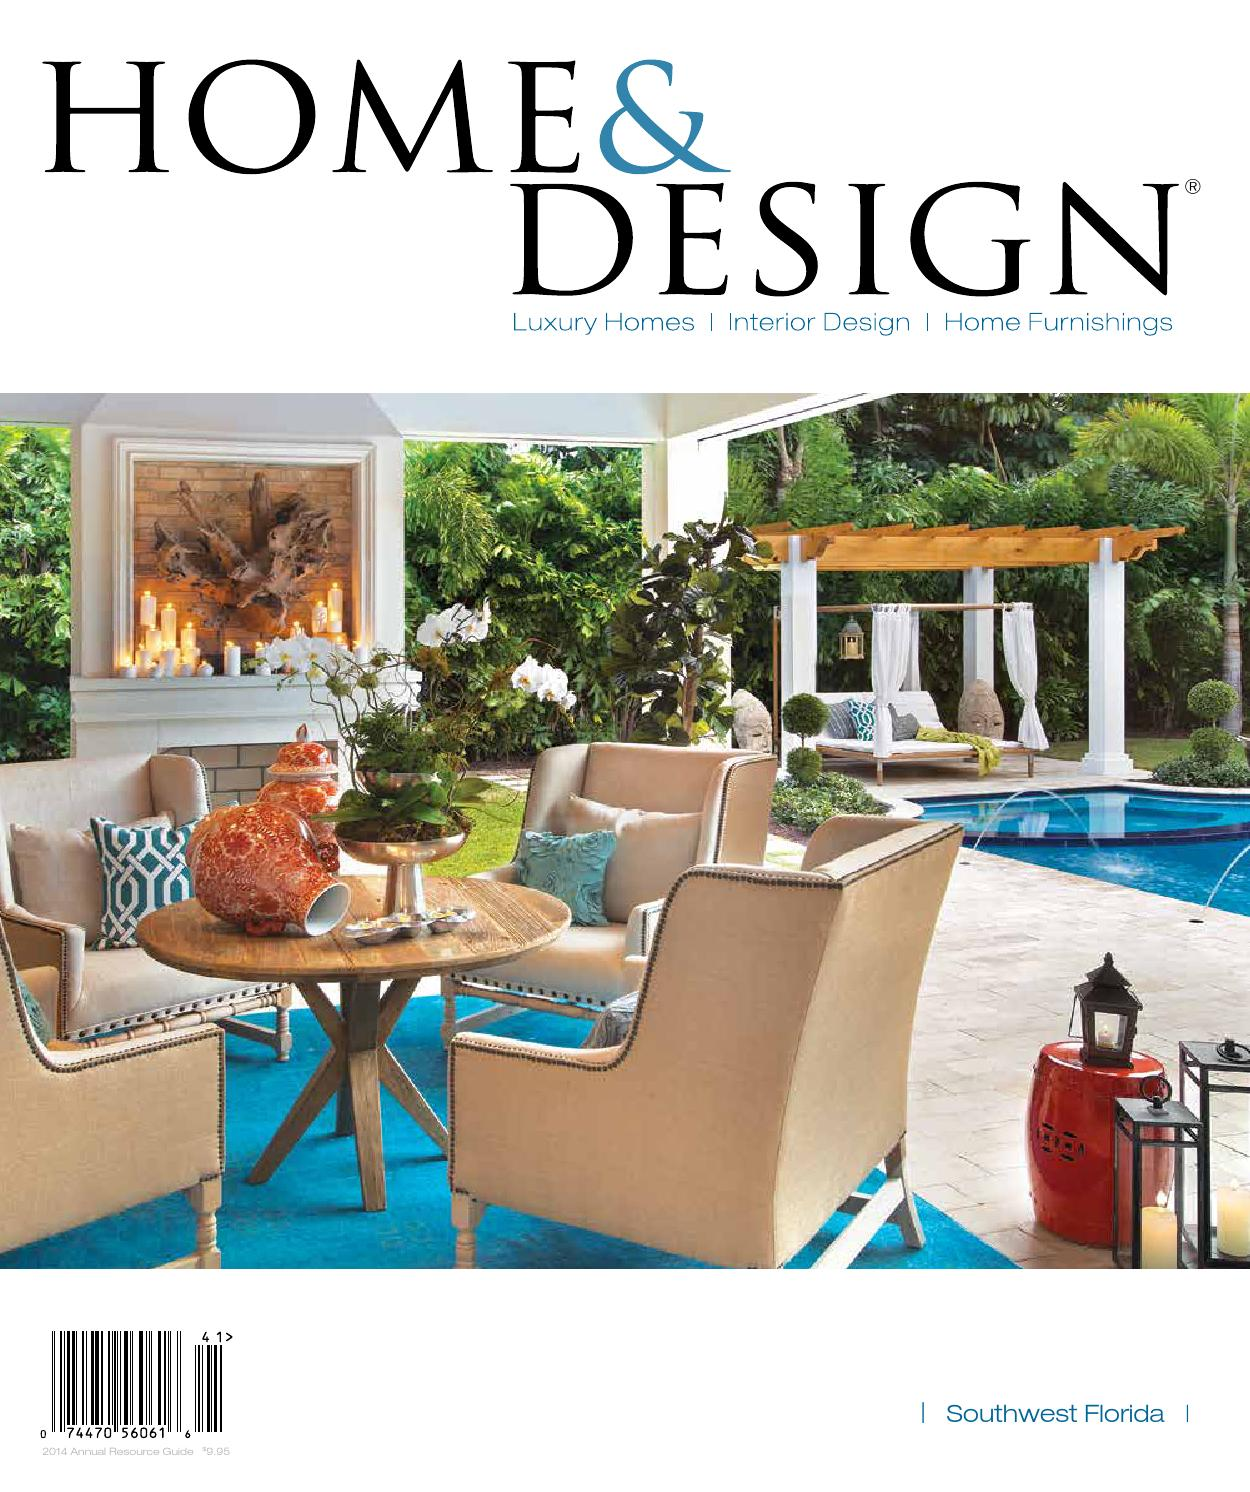 Home & Design Magazine | Annual Resource Guide 2014 | Southwest ...